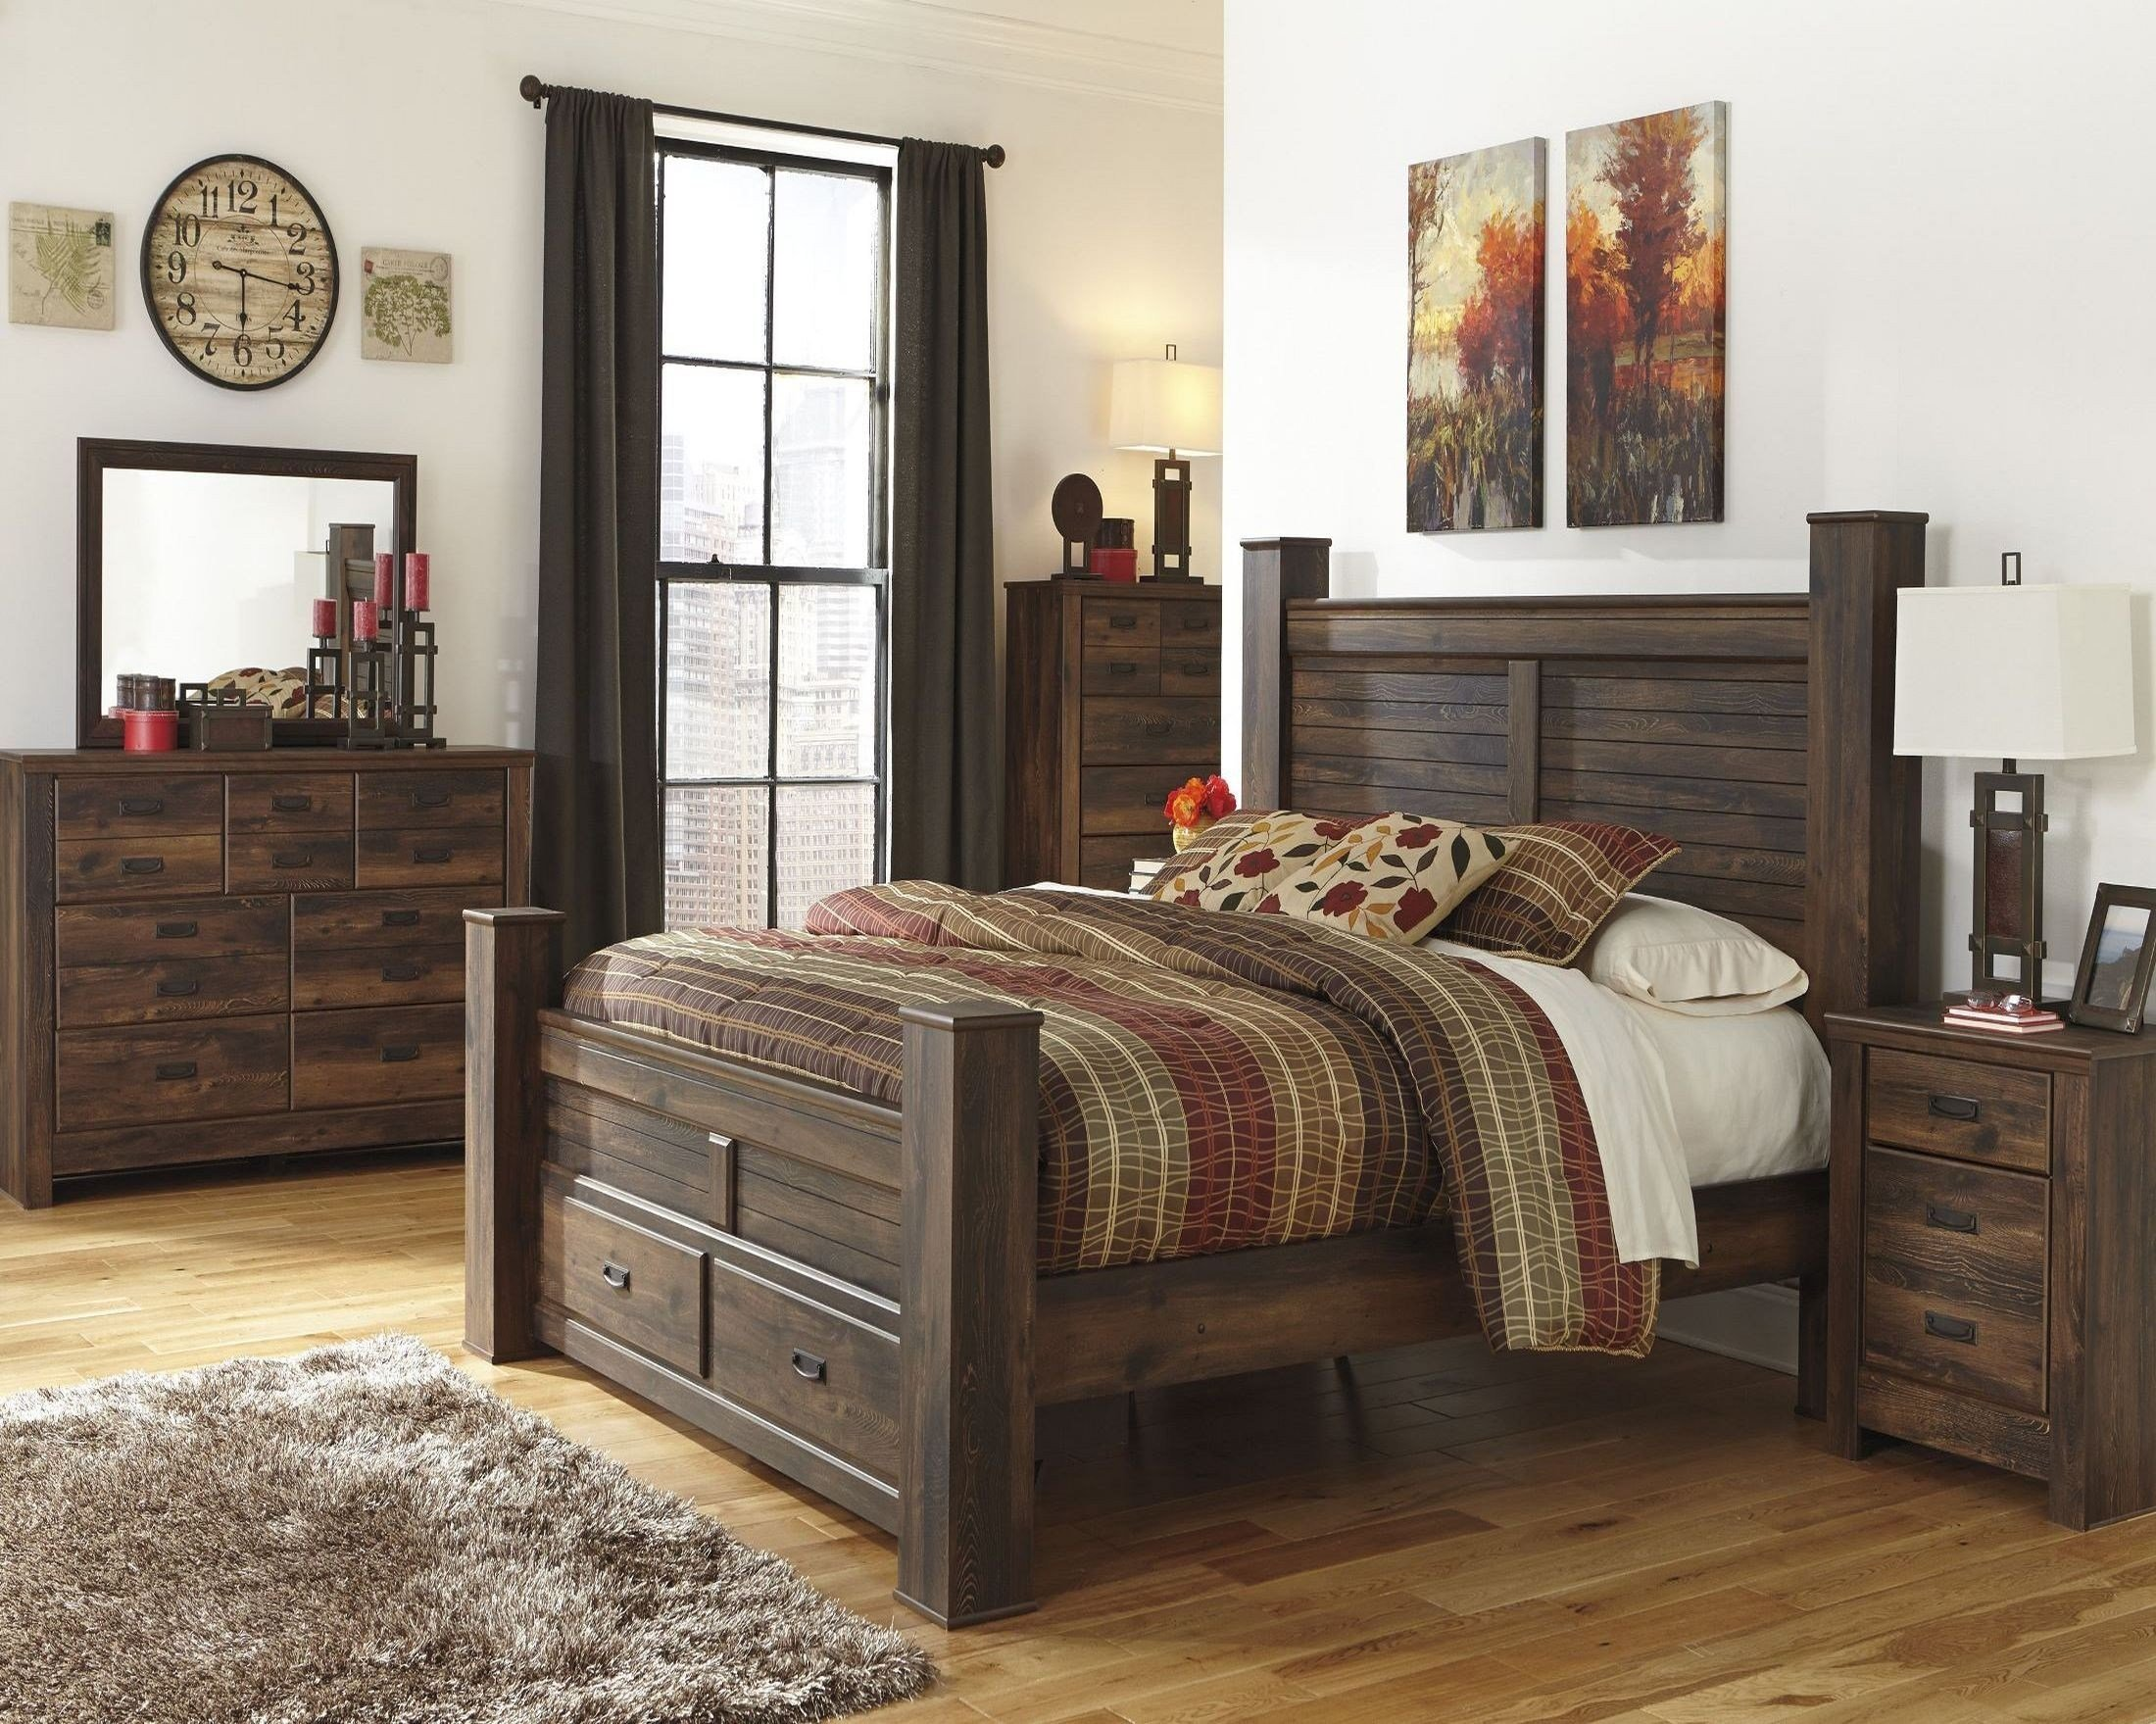 Best Quinden Poster Storage Bedroom Set From Ashley B246 61 64S 98 Coleman Furniture With Pictures